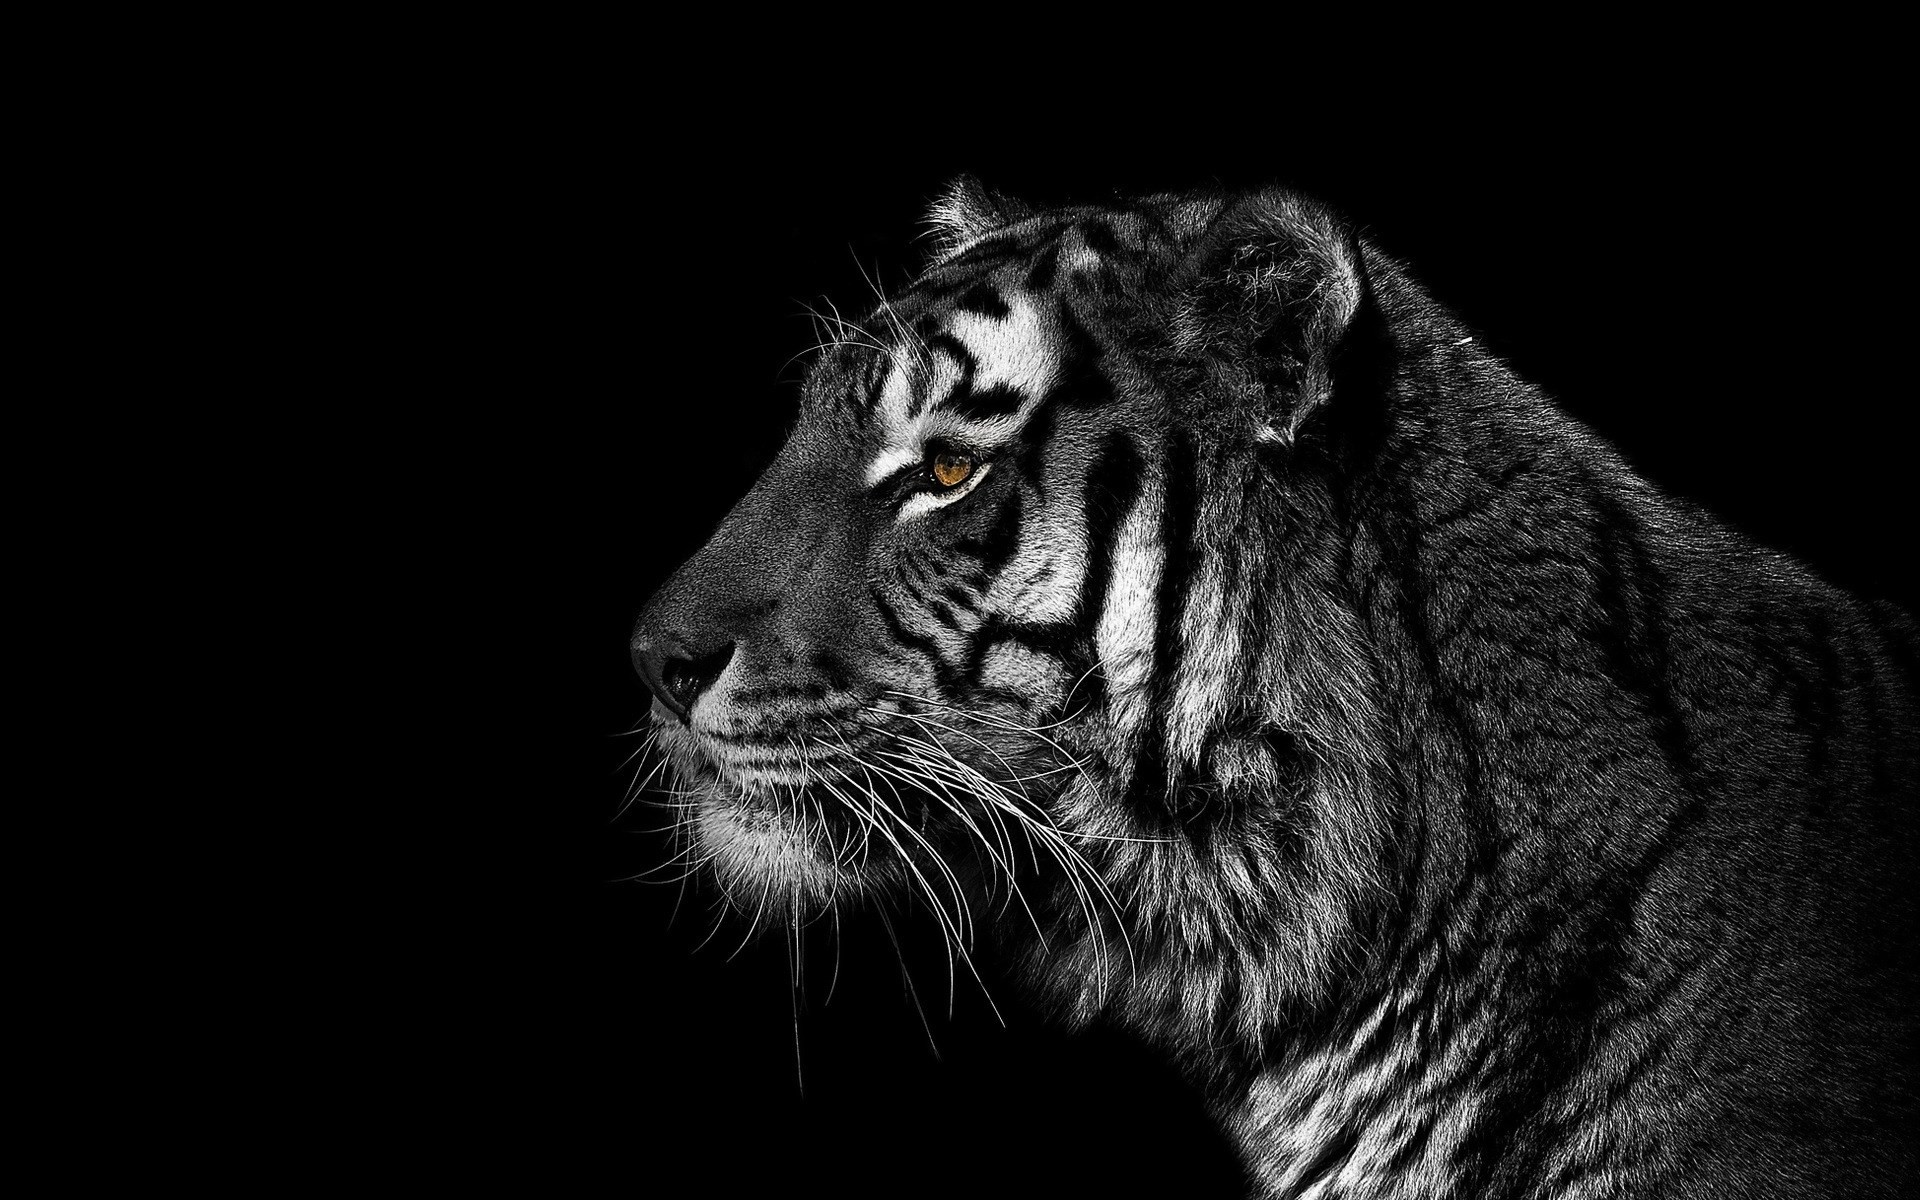 Pretty cool black background Tiger from Christian Meermann